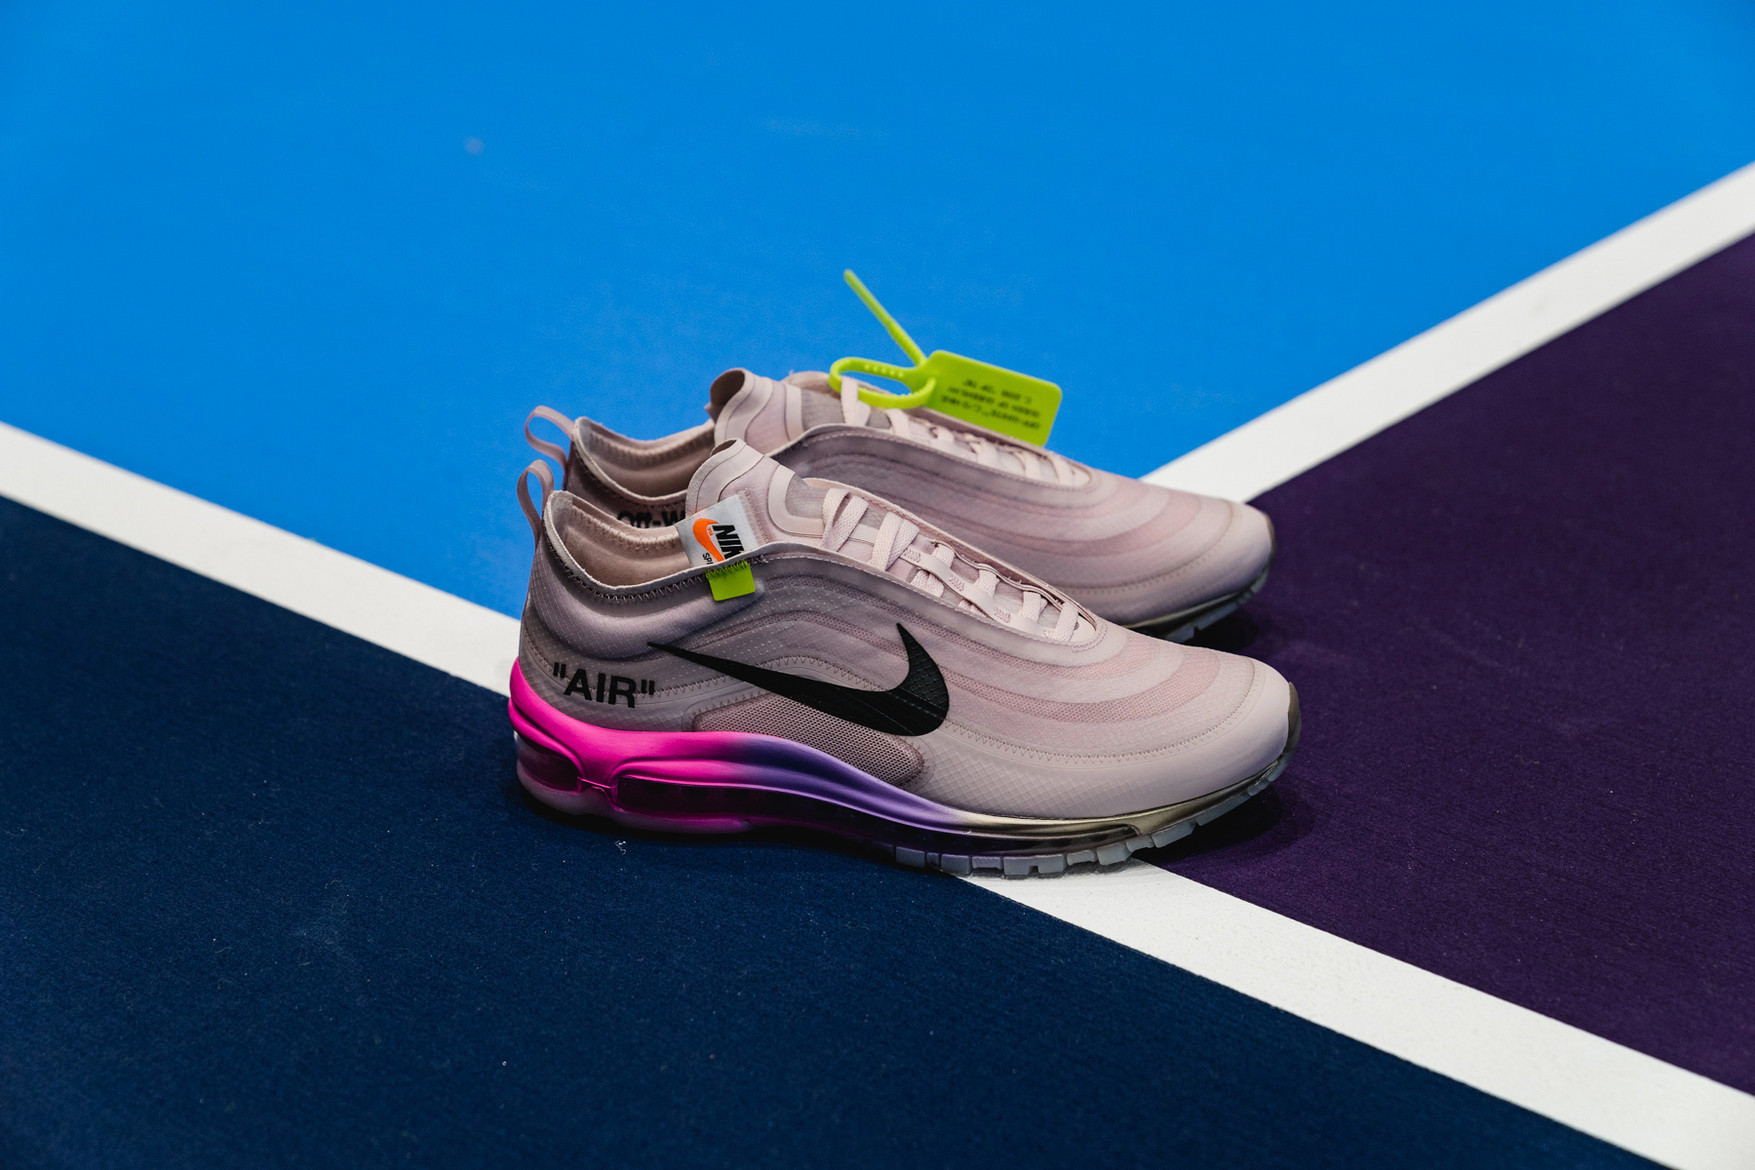 "giay theo thao dat nhat q3.2018 - Off-White x Nike Air Max 97 ""Queen"" - elle man"